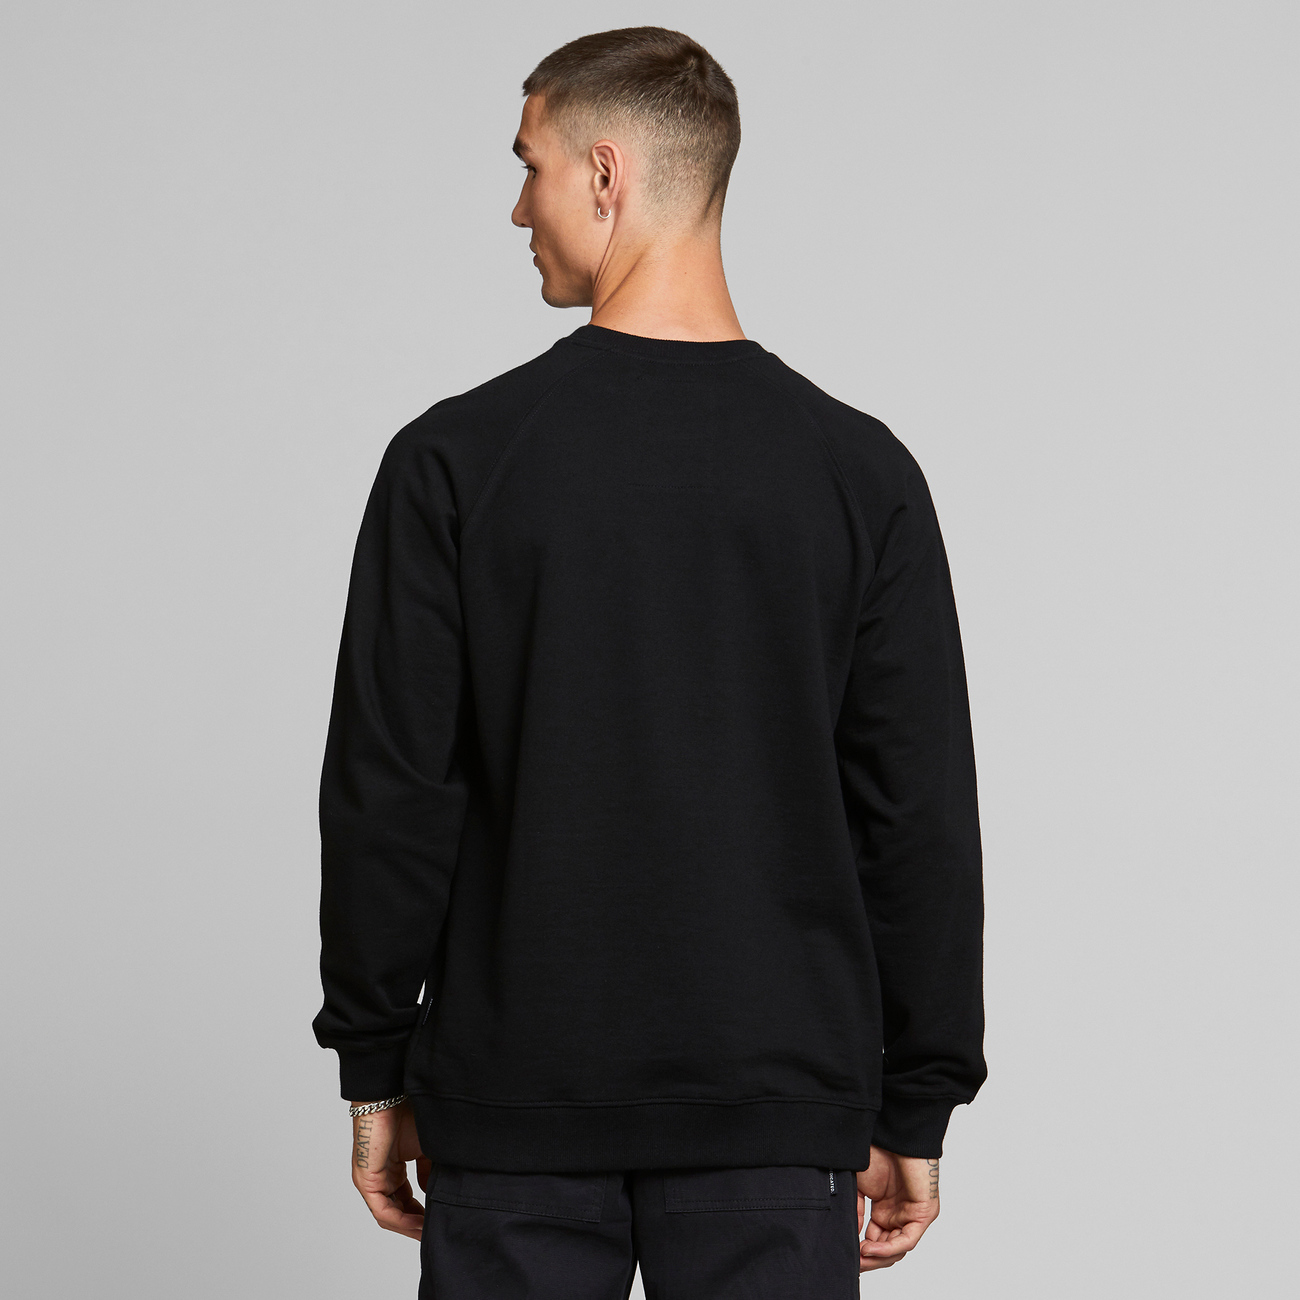 Sweatshirt Malmoe Dedicated Logo Black